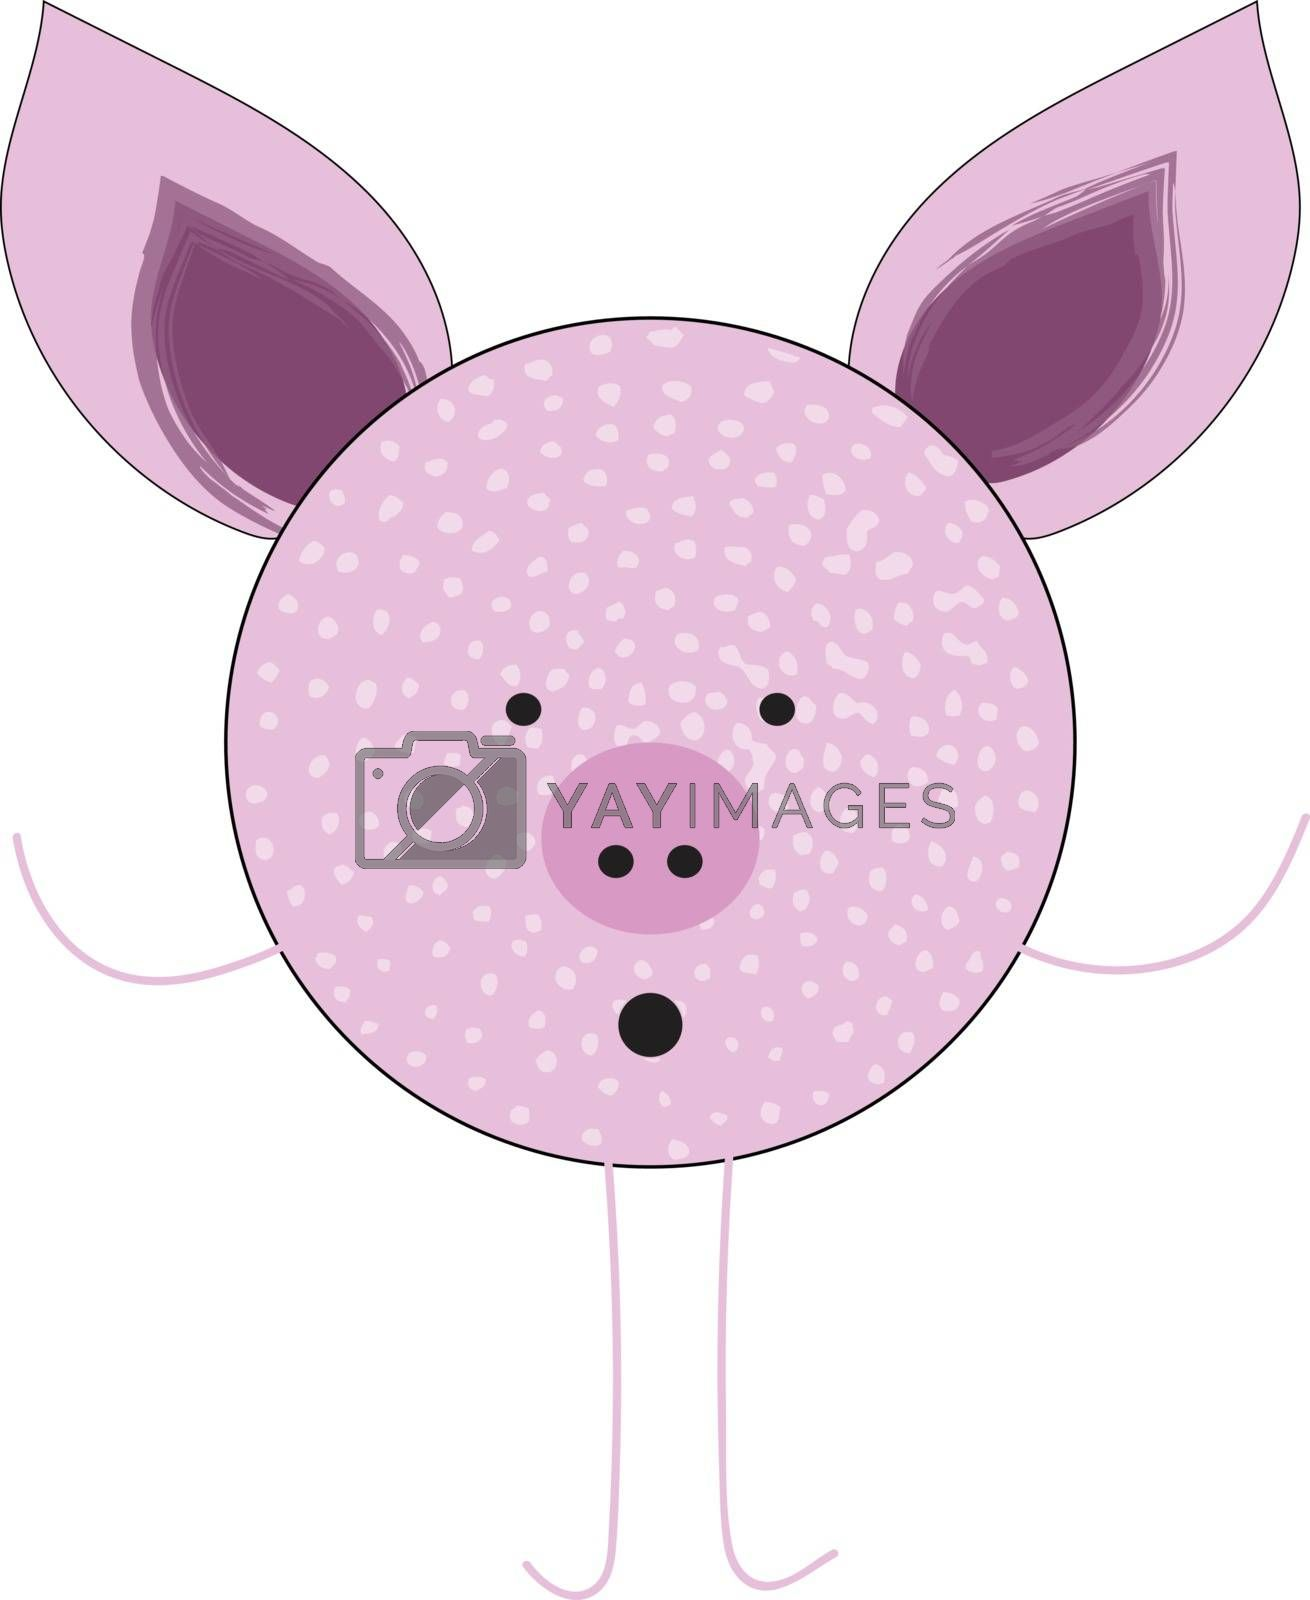 Royalty free image of Cartoon purple-colored pig vector or color illustration by Morphart